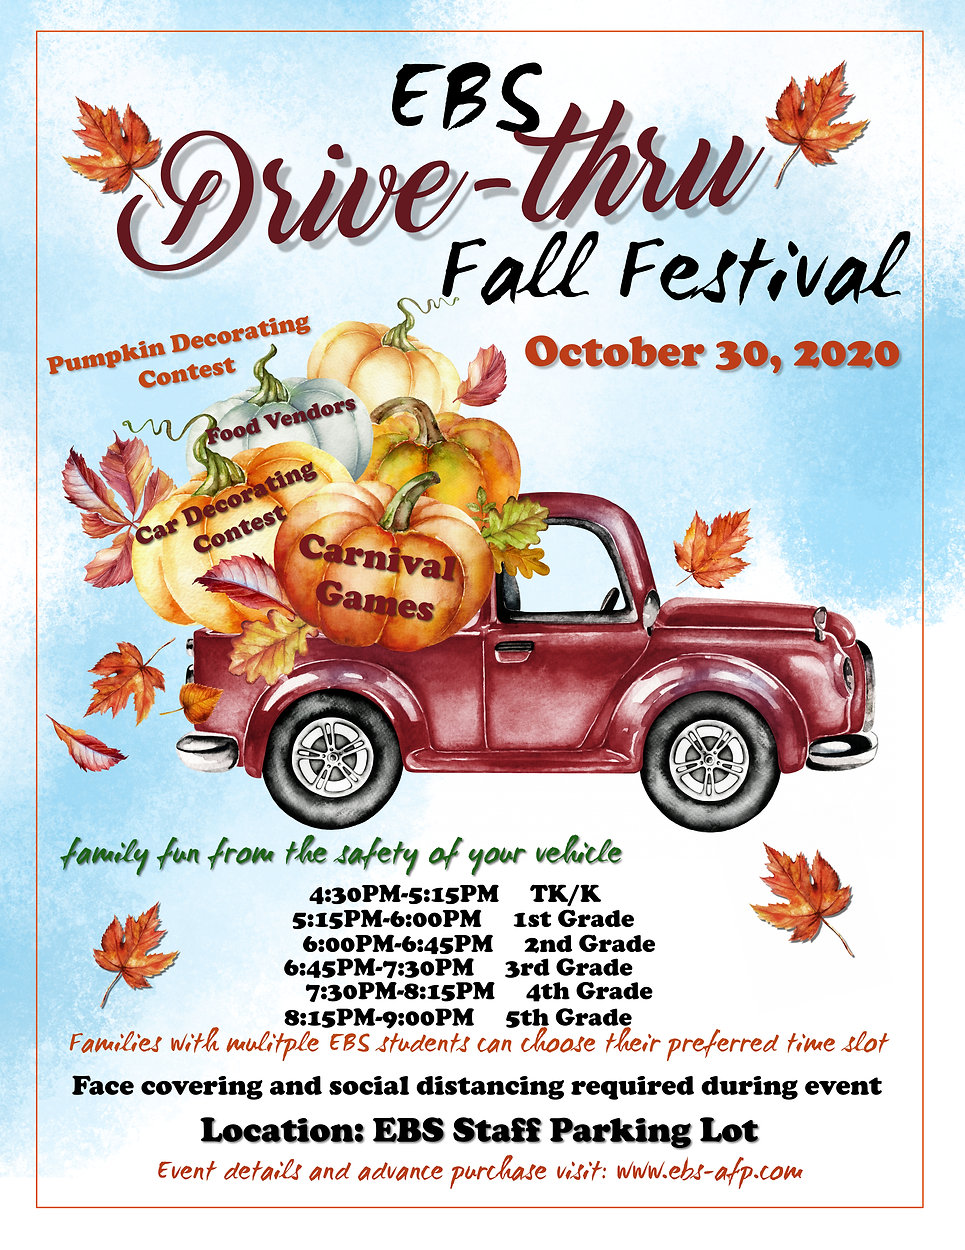 EBS Drive-by fall fest 2020.jpg